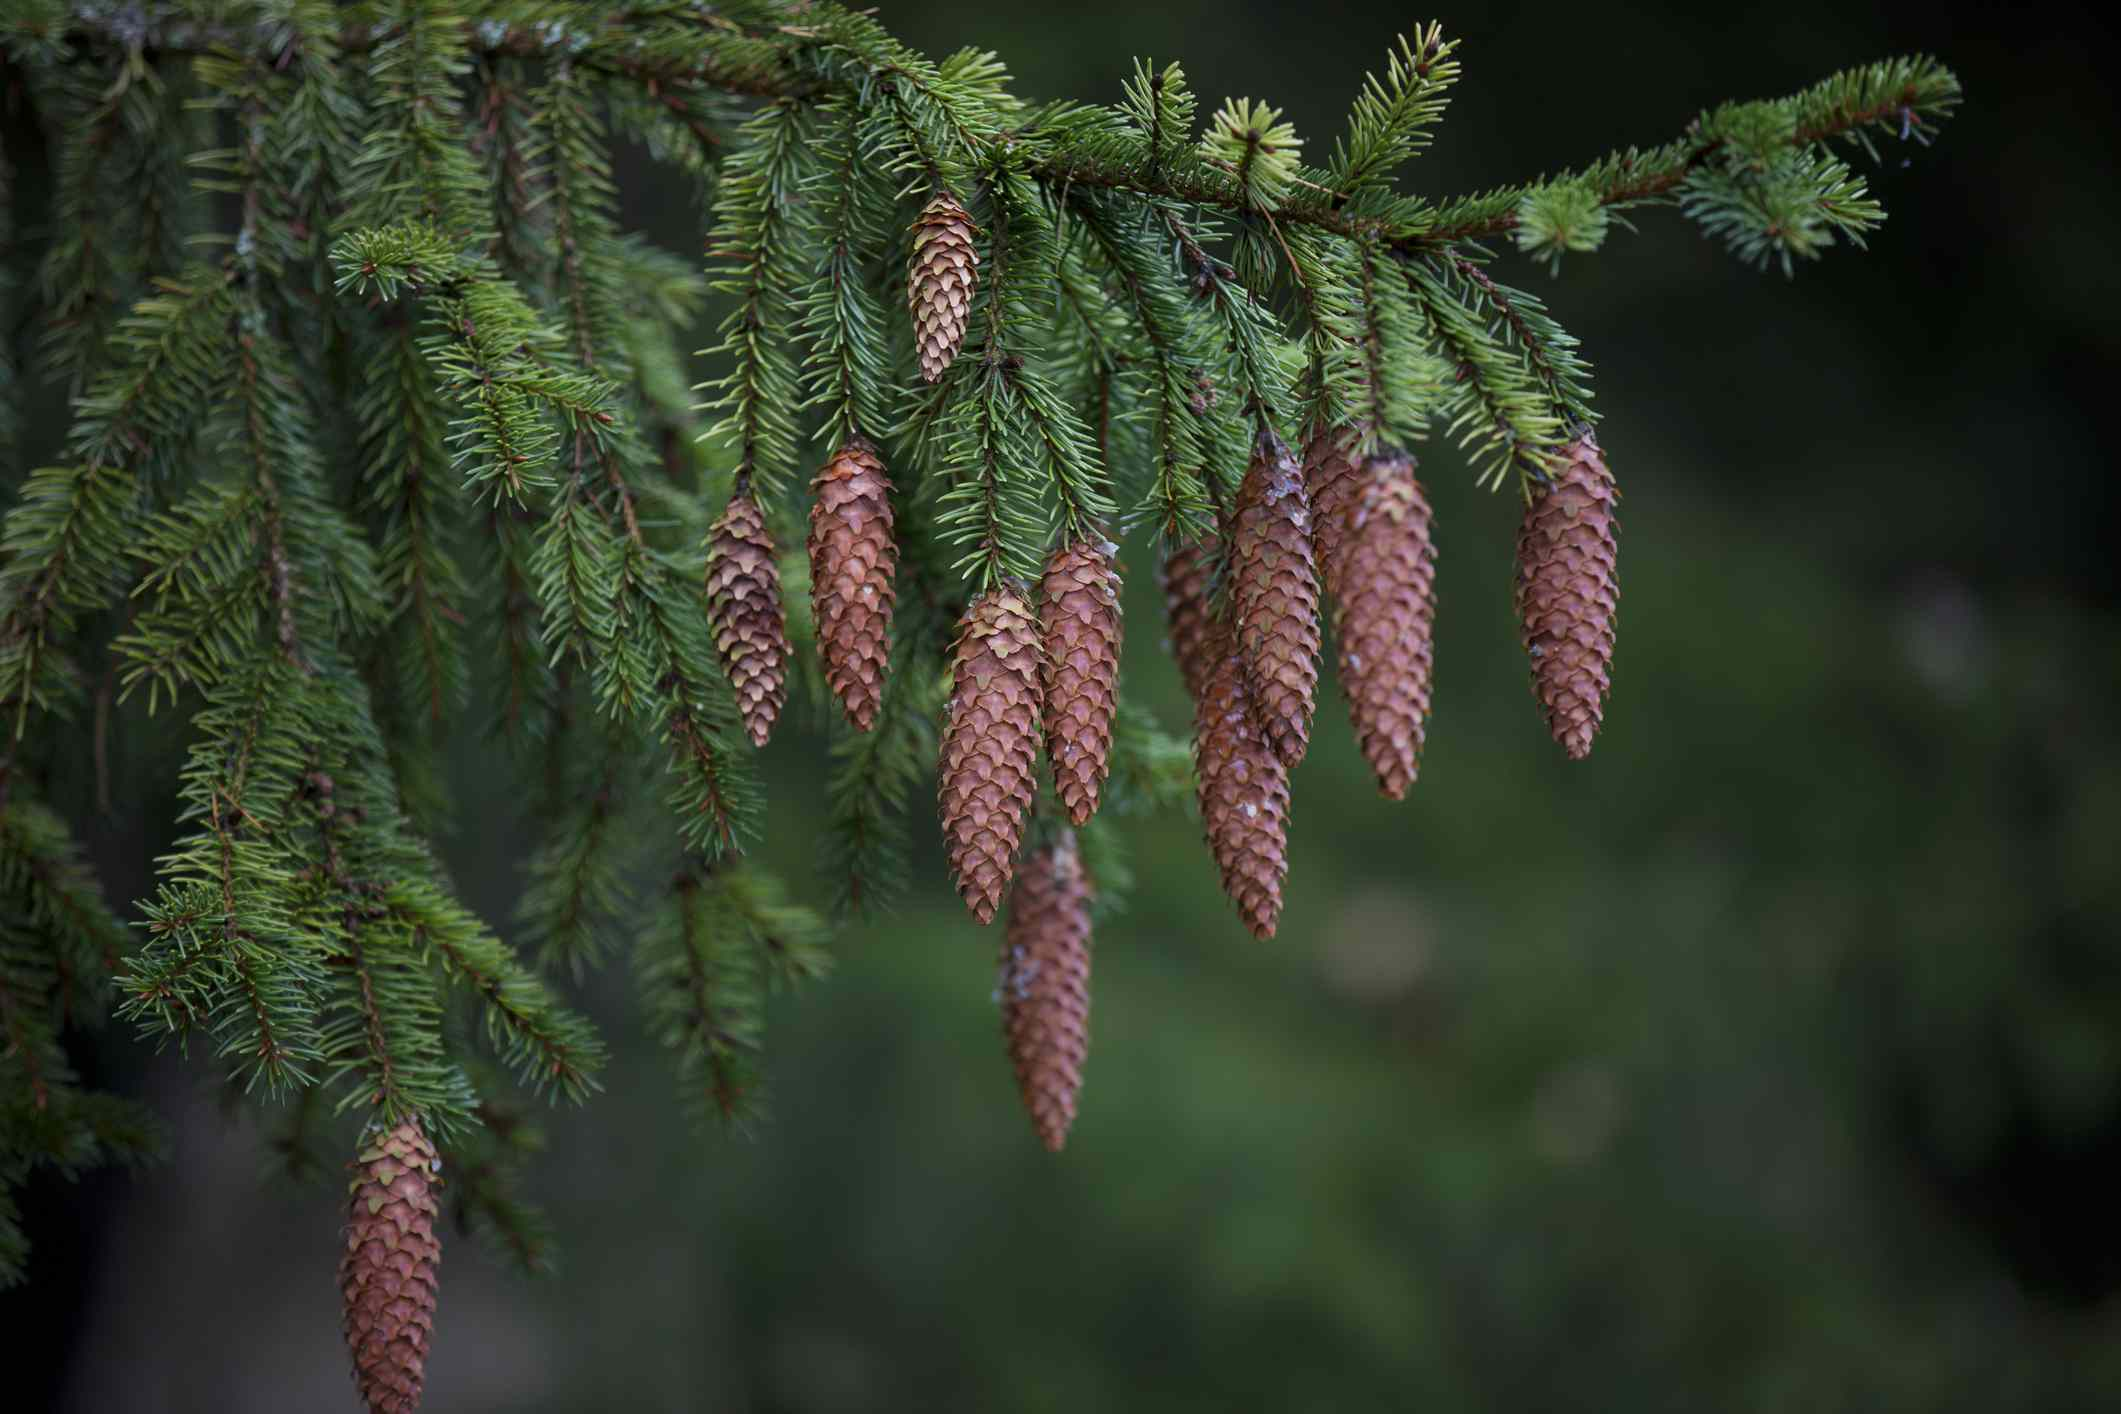 Spruce cones hanging off the branches of tree.